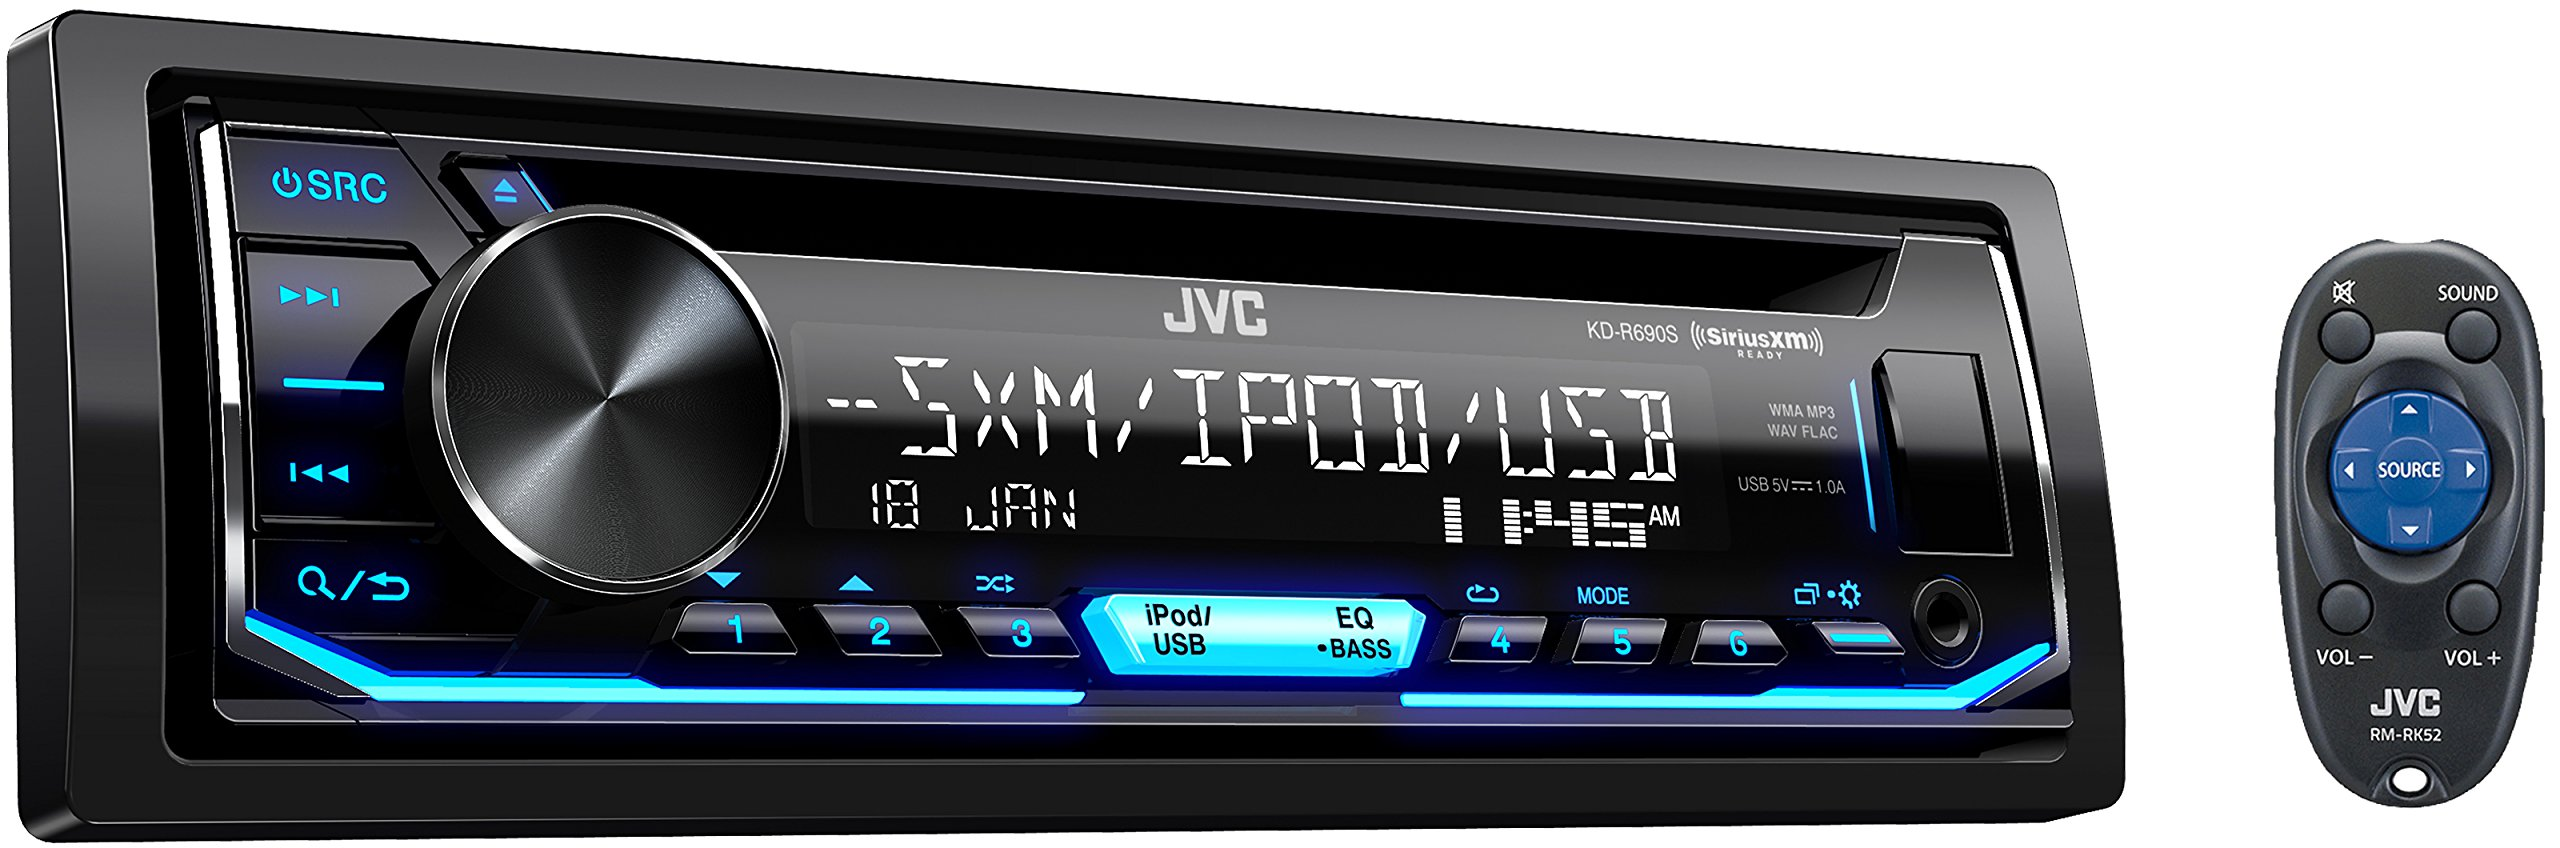 JVC KD R690S Receiver Featuring Illumination